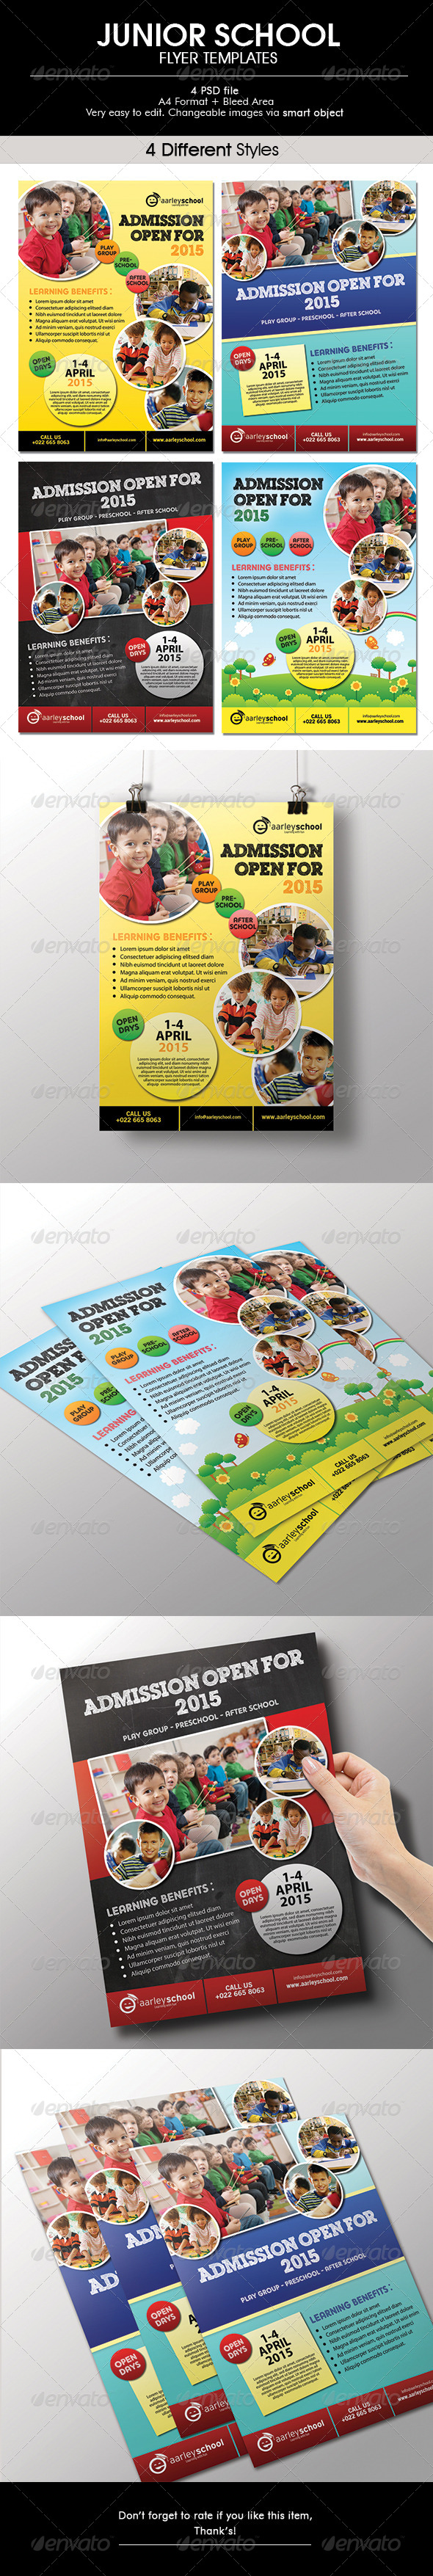 GraphicRiver Junior School Flyer 6529200